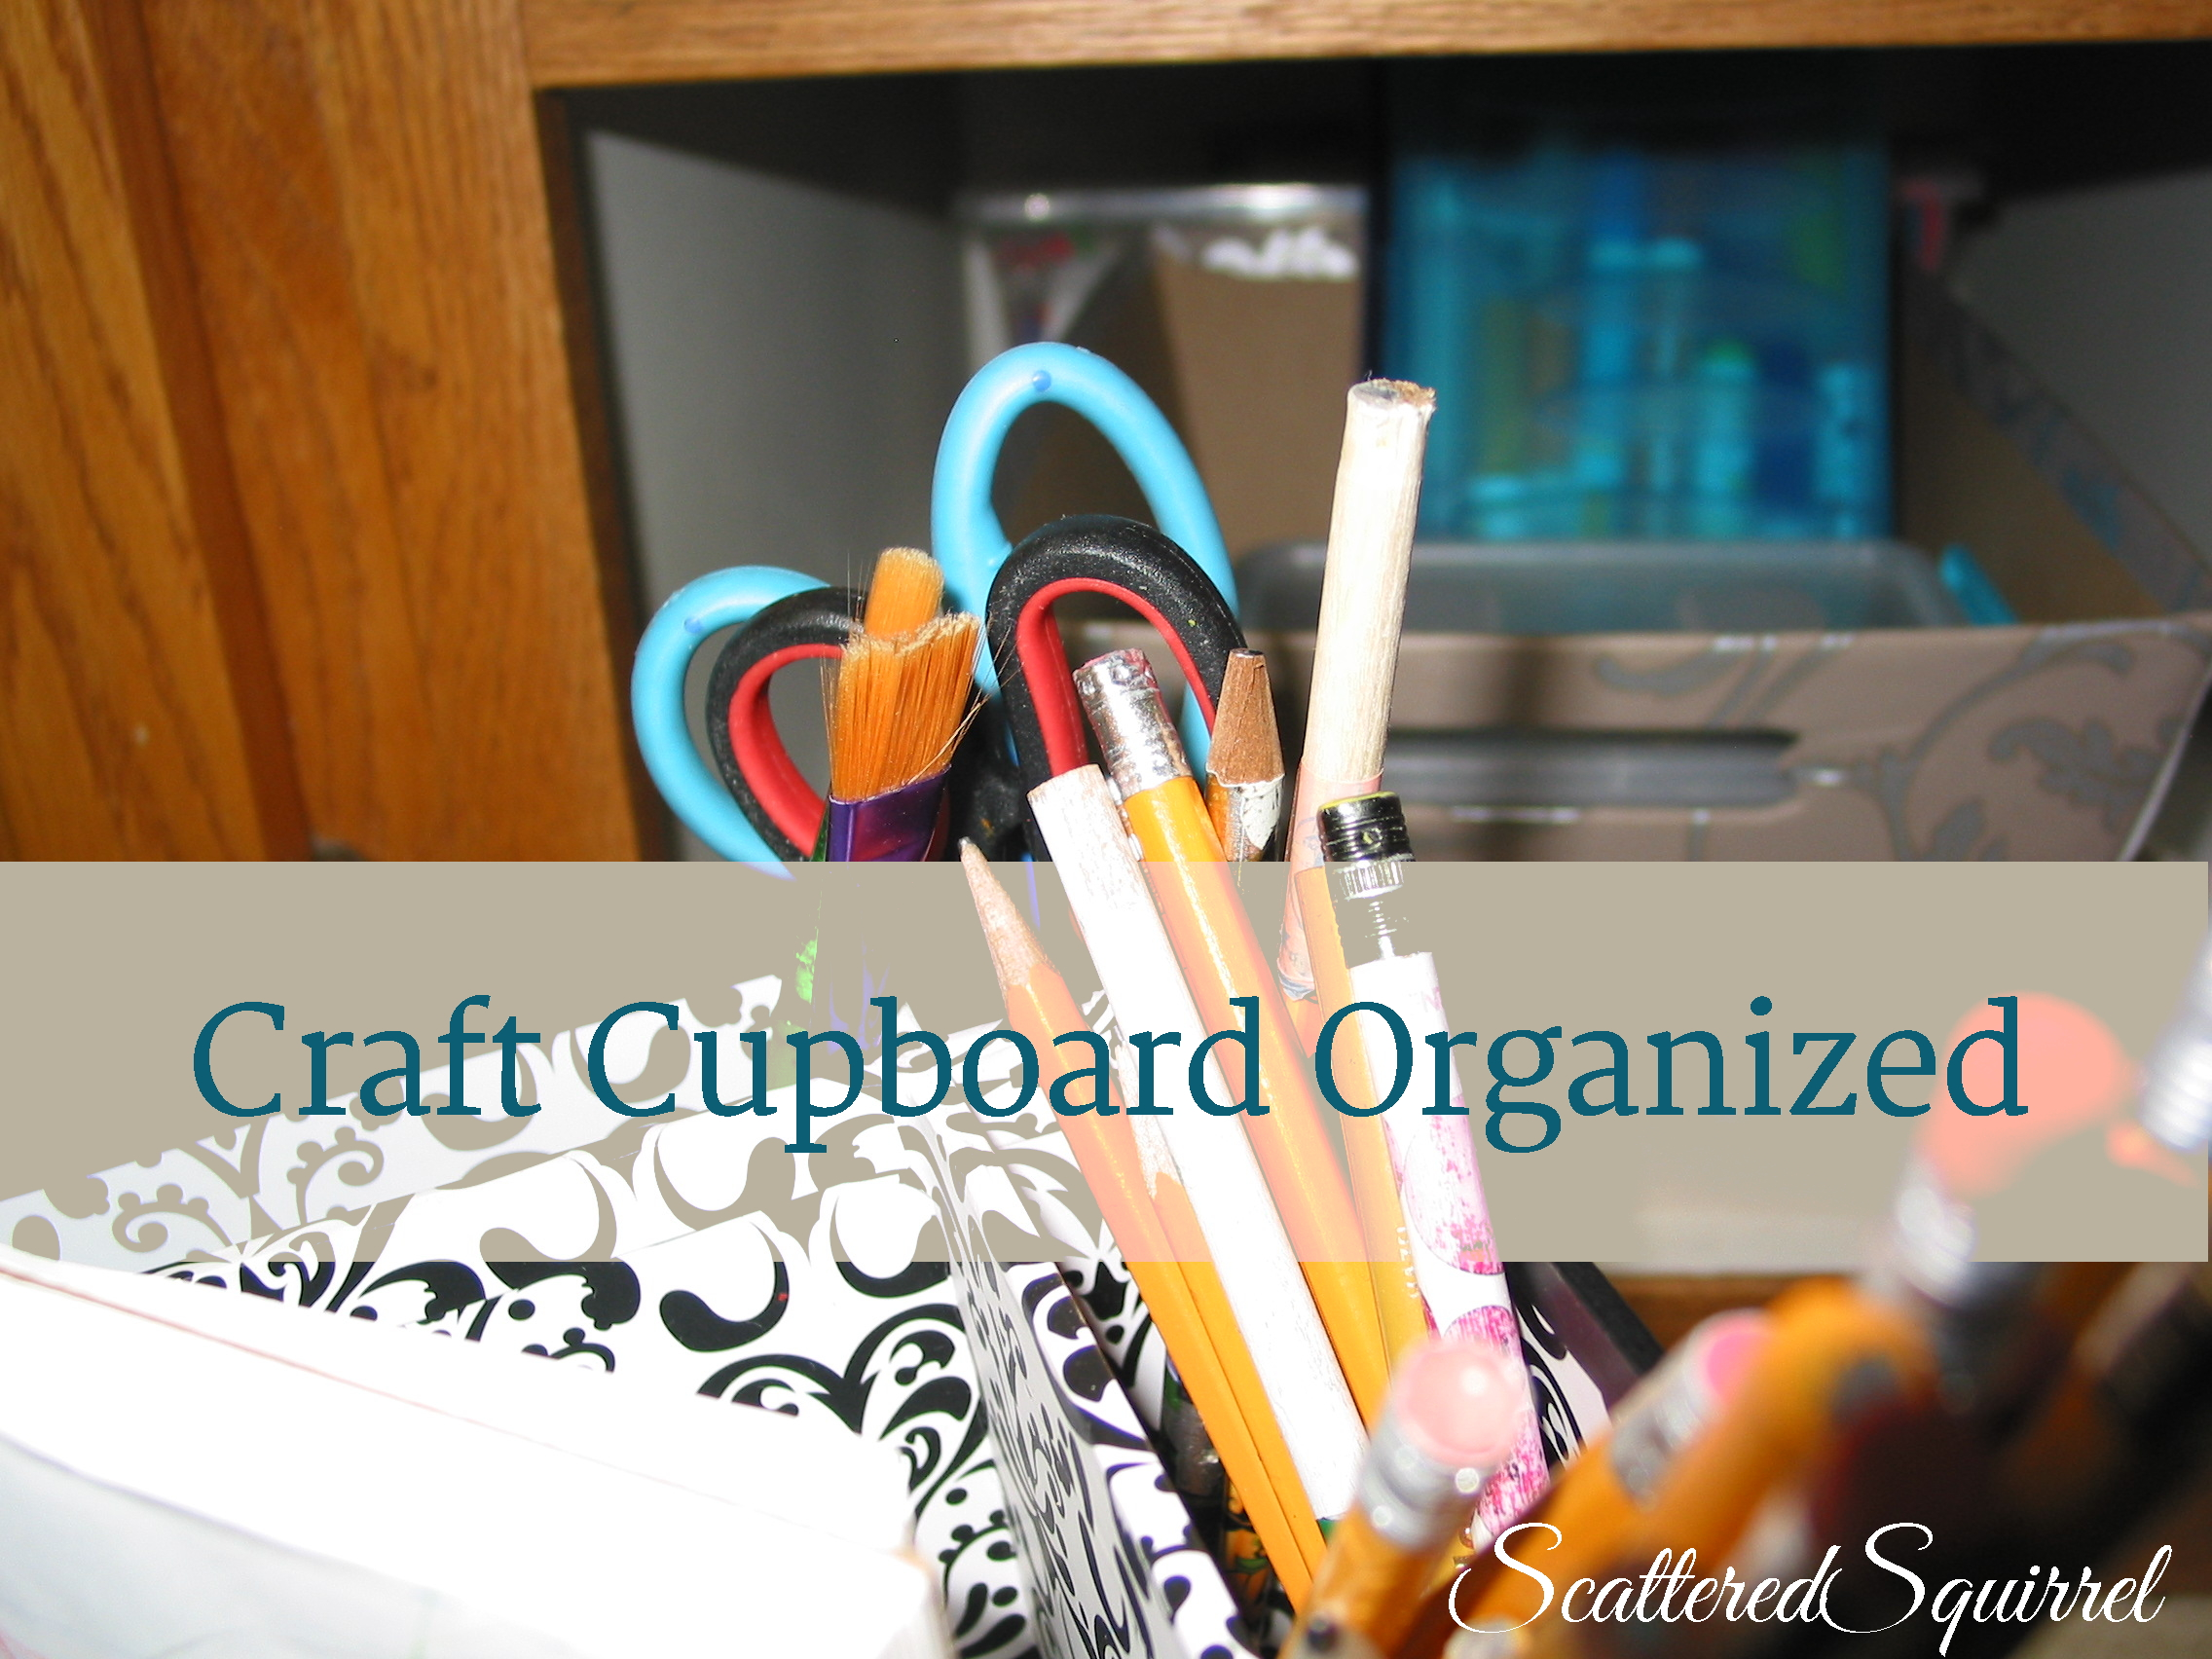 Kid's Craft Cupboard Organization 2272 x 1704